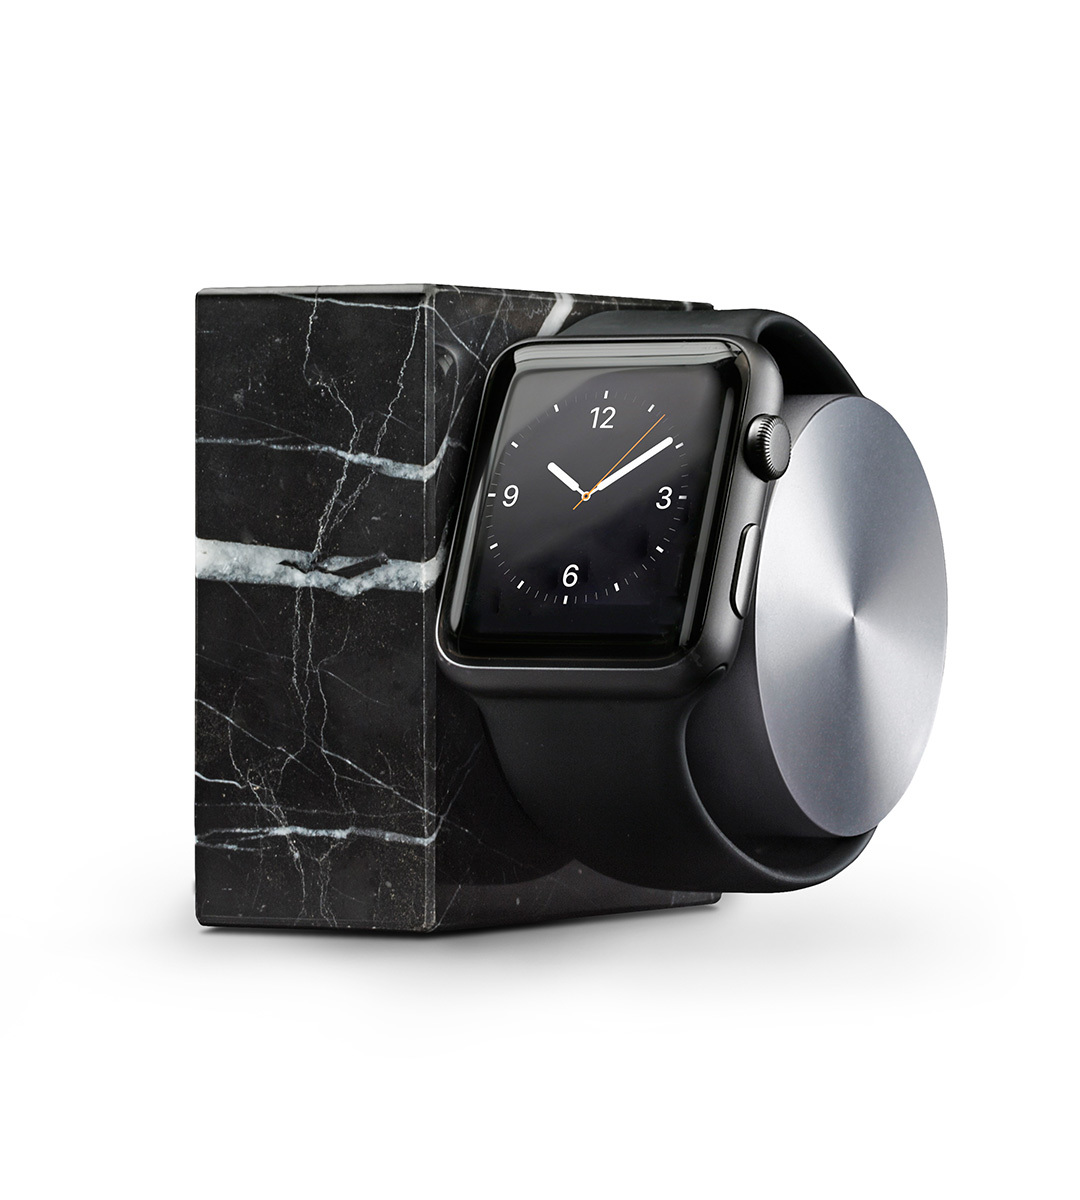 Nabíjecí stojánek pro Apple Watch 38mm / 42mm - Native Union, Dock Watch Marble Black